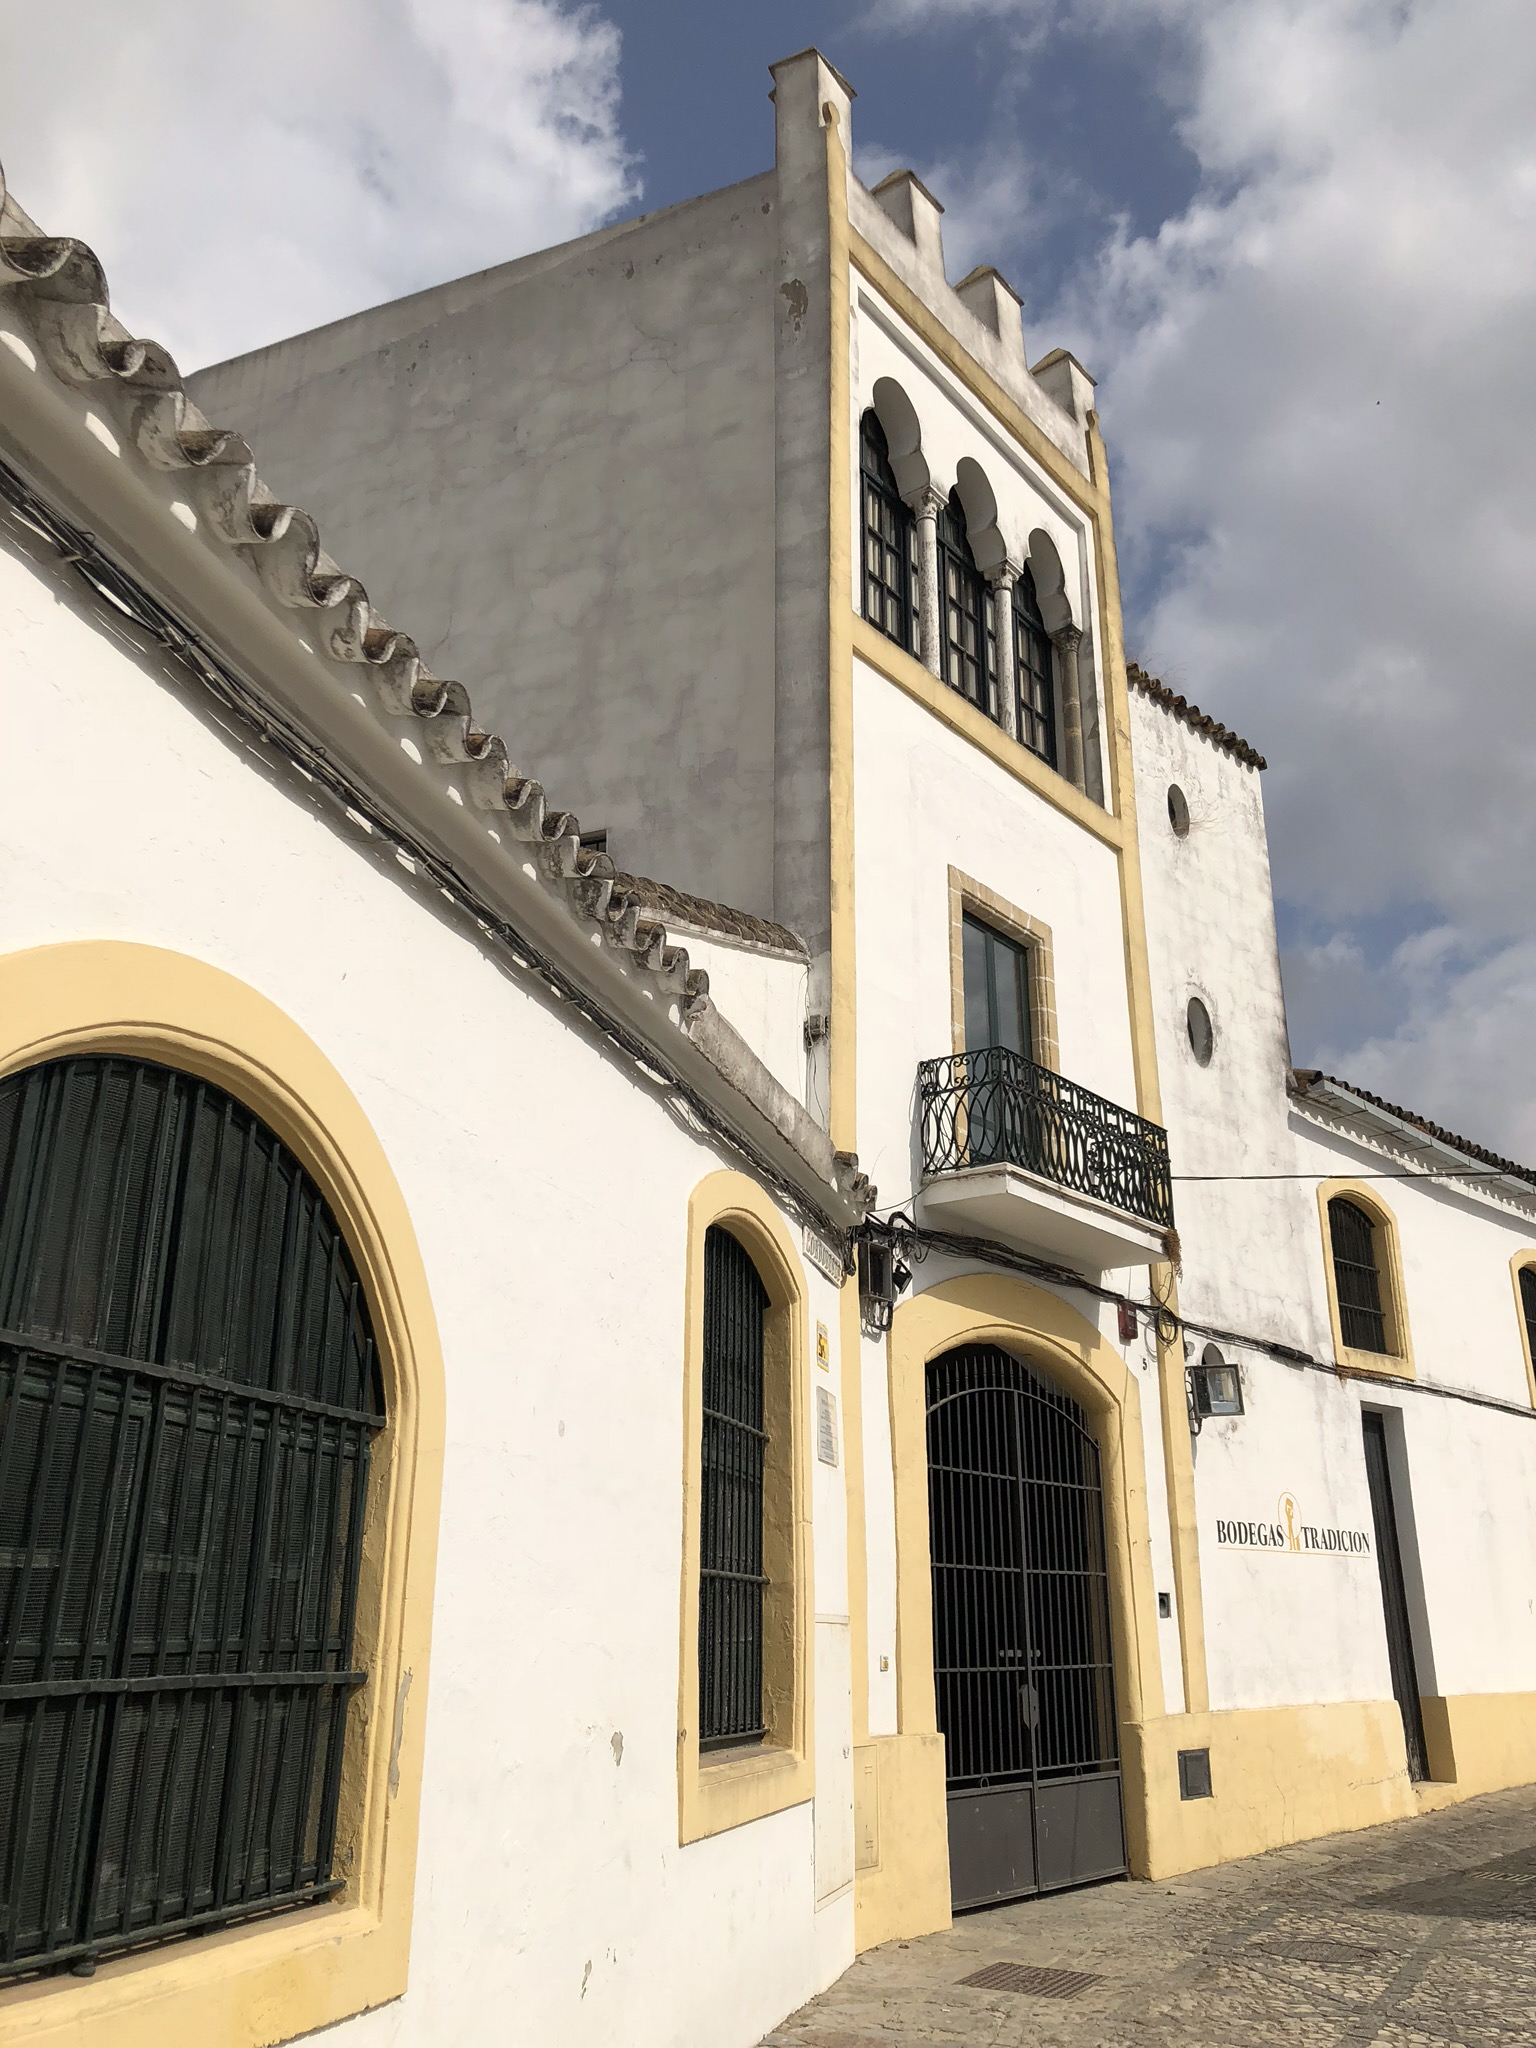 Bodegas Tradicion after the tour on September 3, 2018